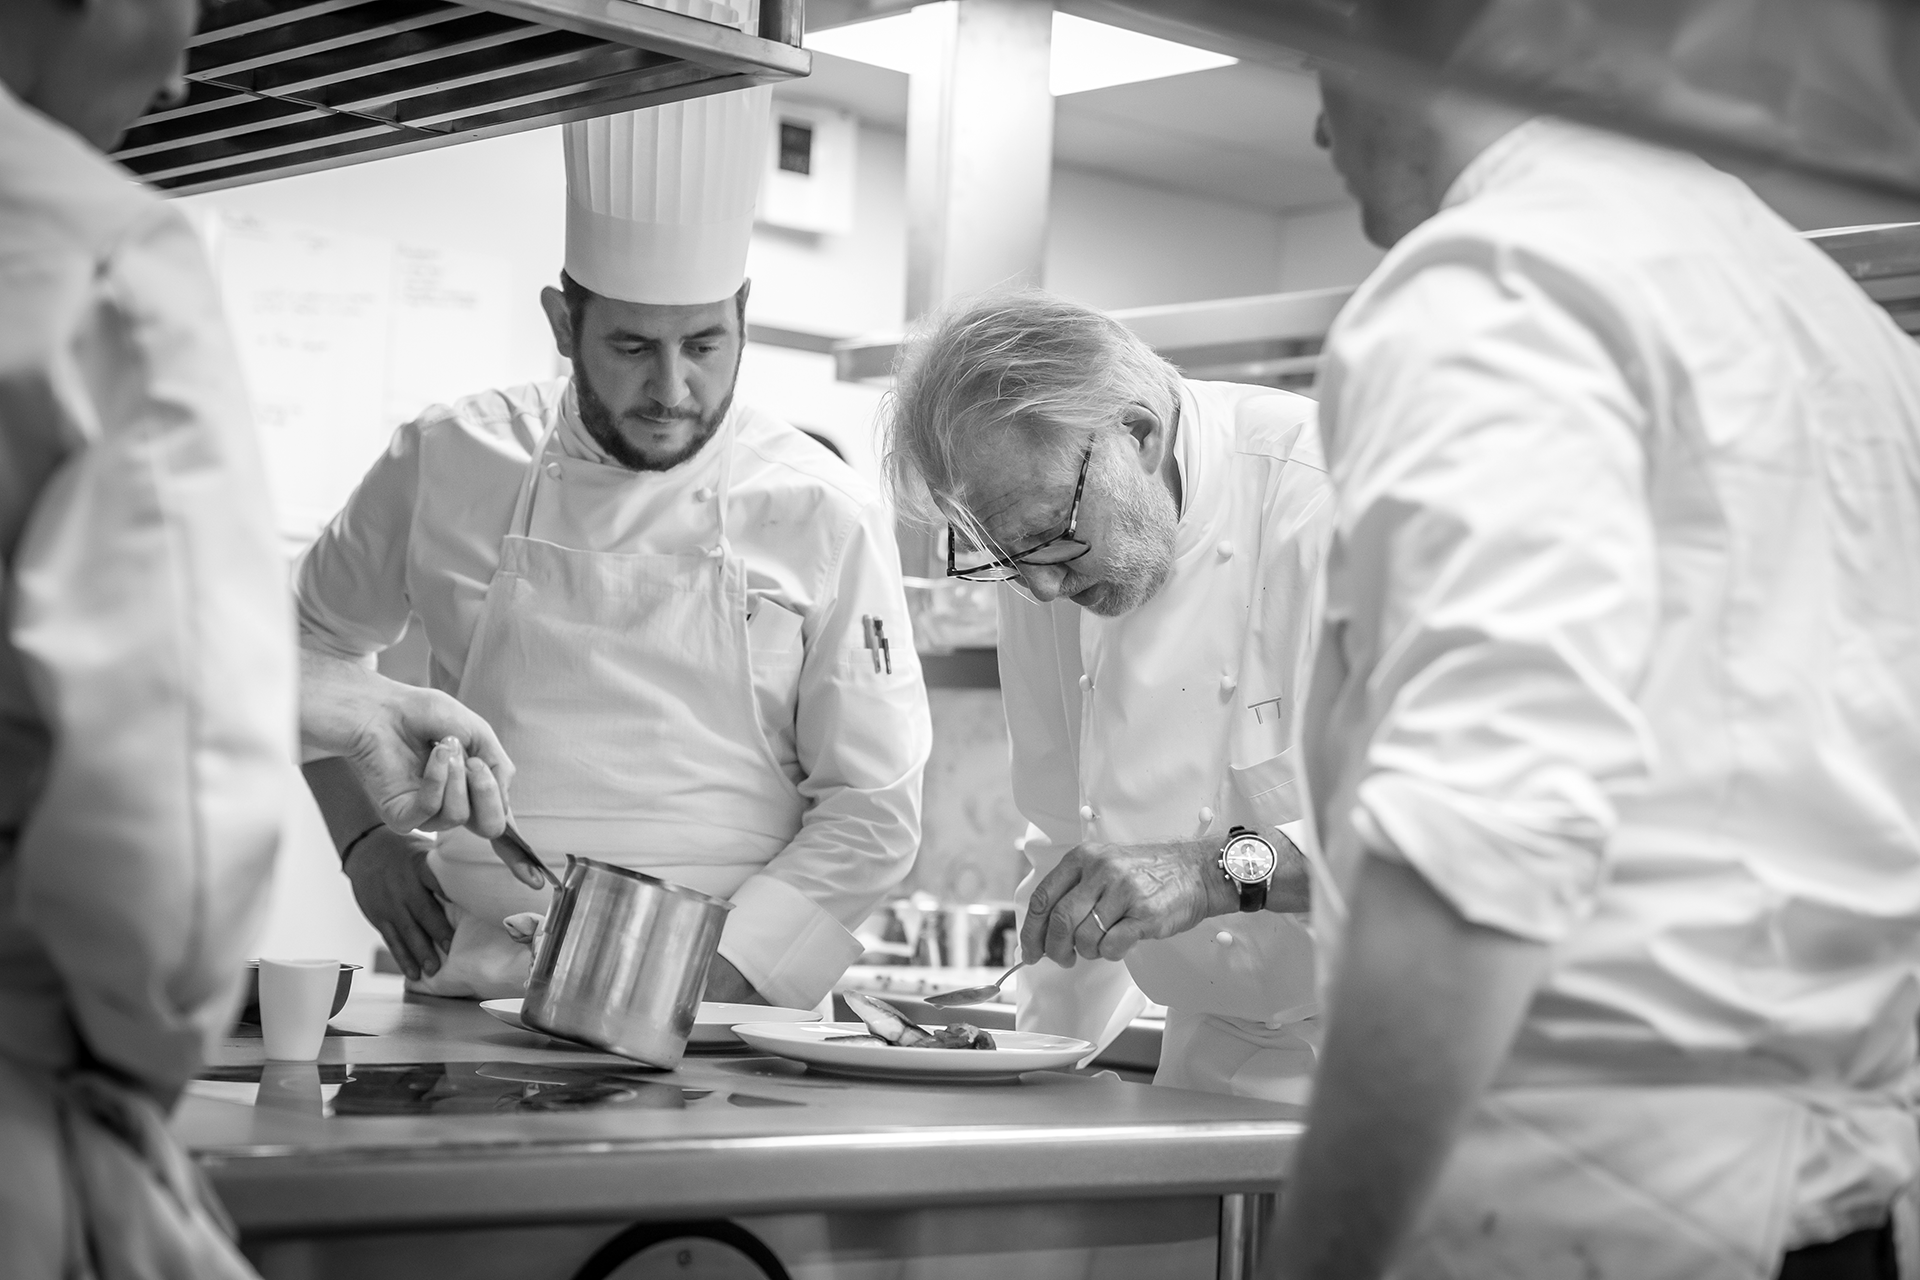 Maison Albar Hotels L'Imperator, starred chef Pierre Gagnaire